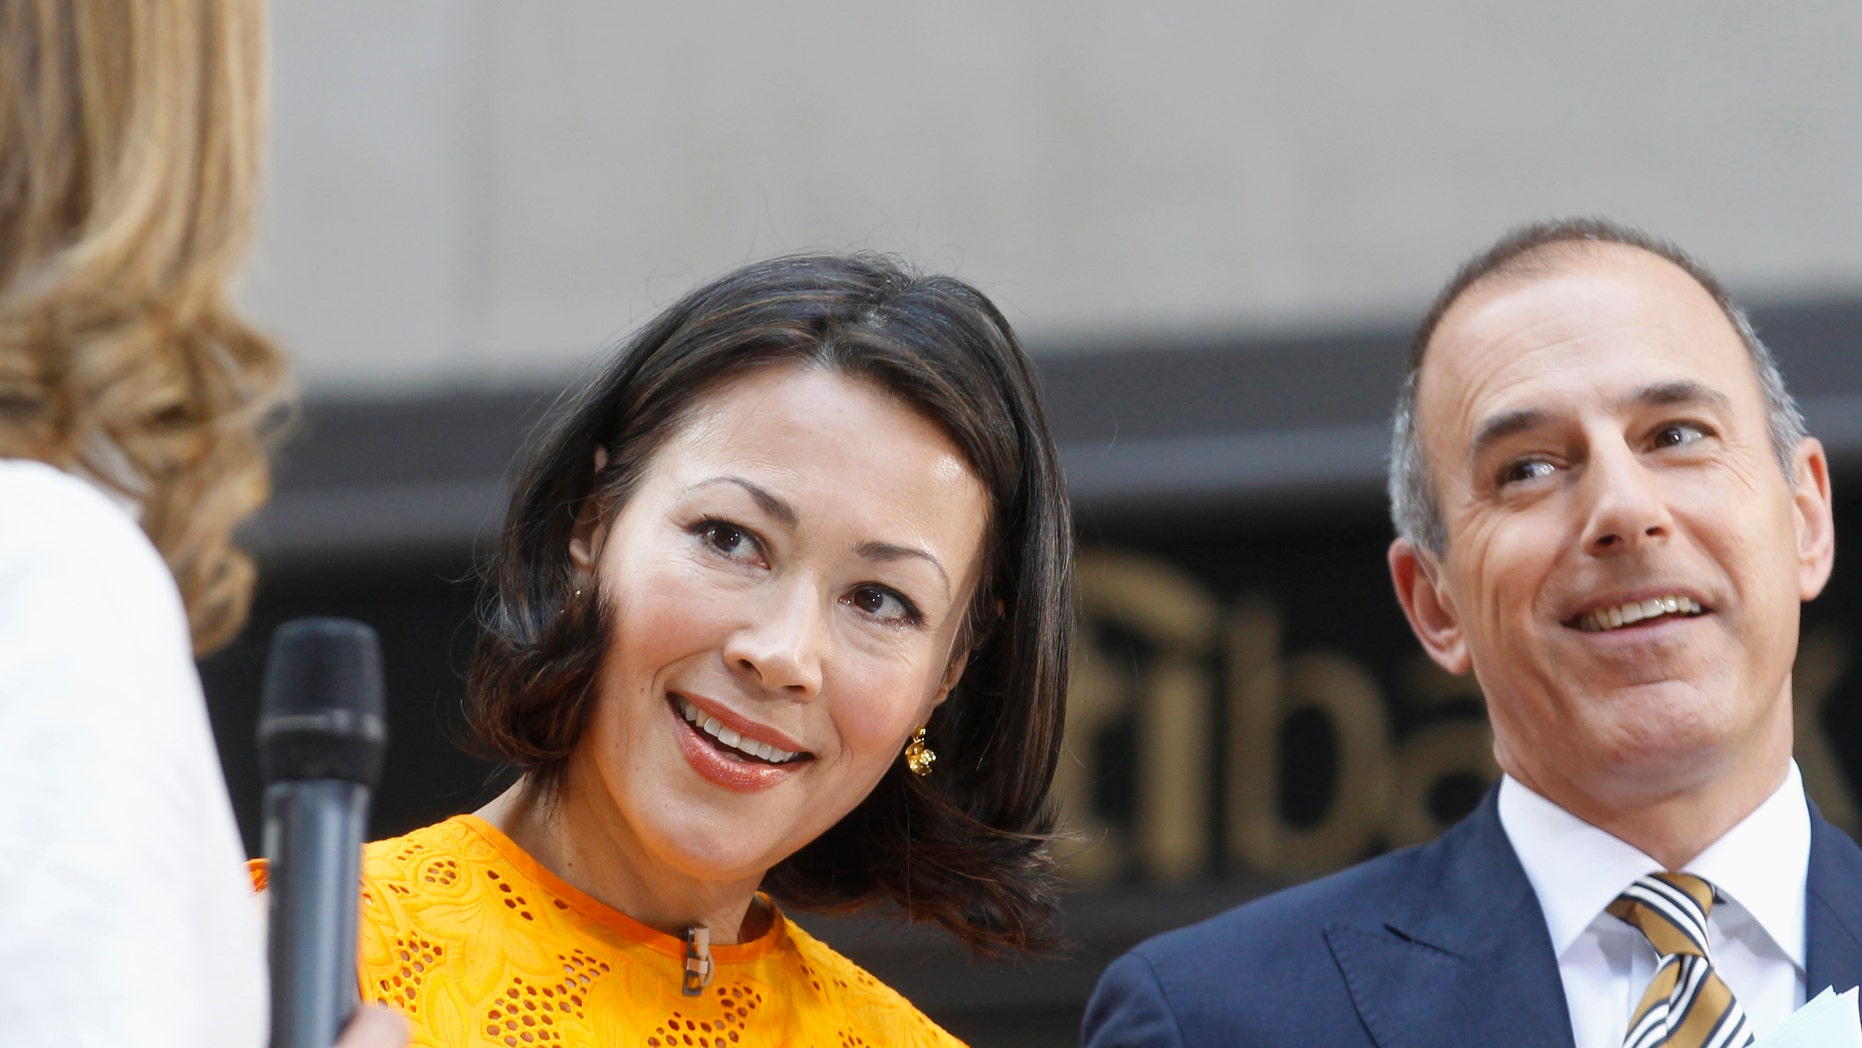 """Former """"Today"""" host Ann Curry and current """"Today"""" host Matt Lauer appear on set during the show in New York June 22, 2012"""